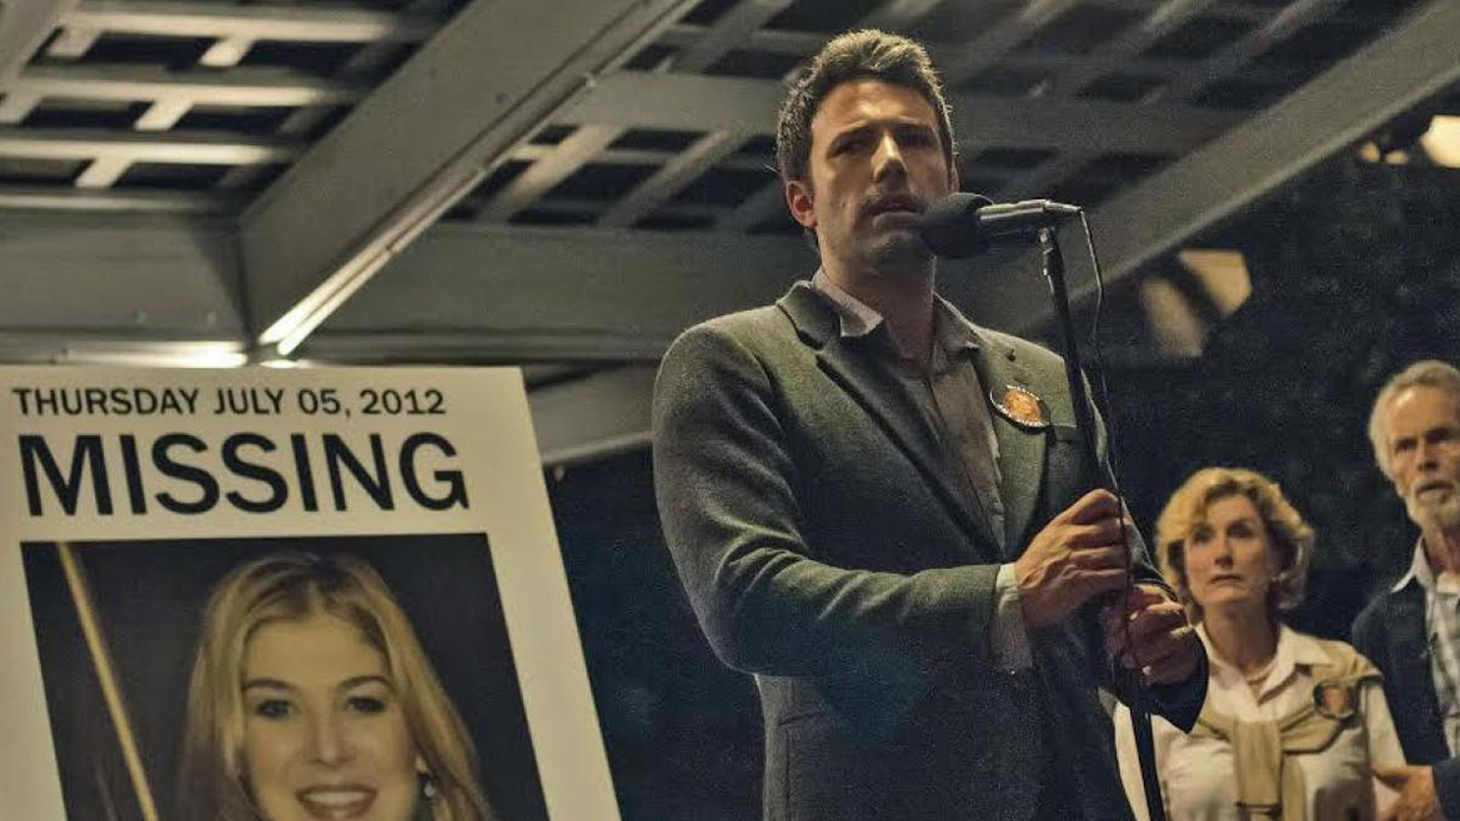 Rather than let nuance intrude, Gone Girl doubles down on perversity, and its stars follow suit.